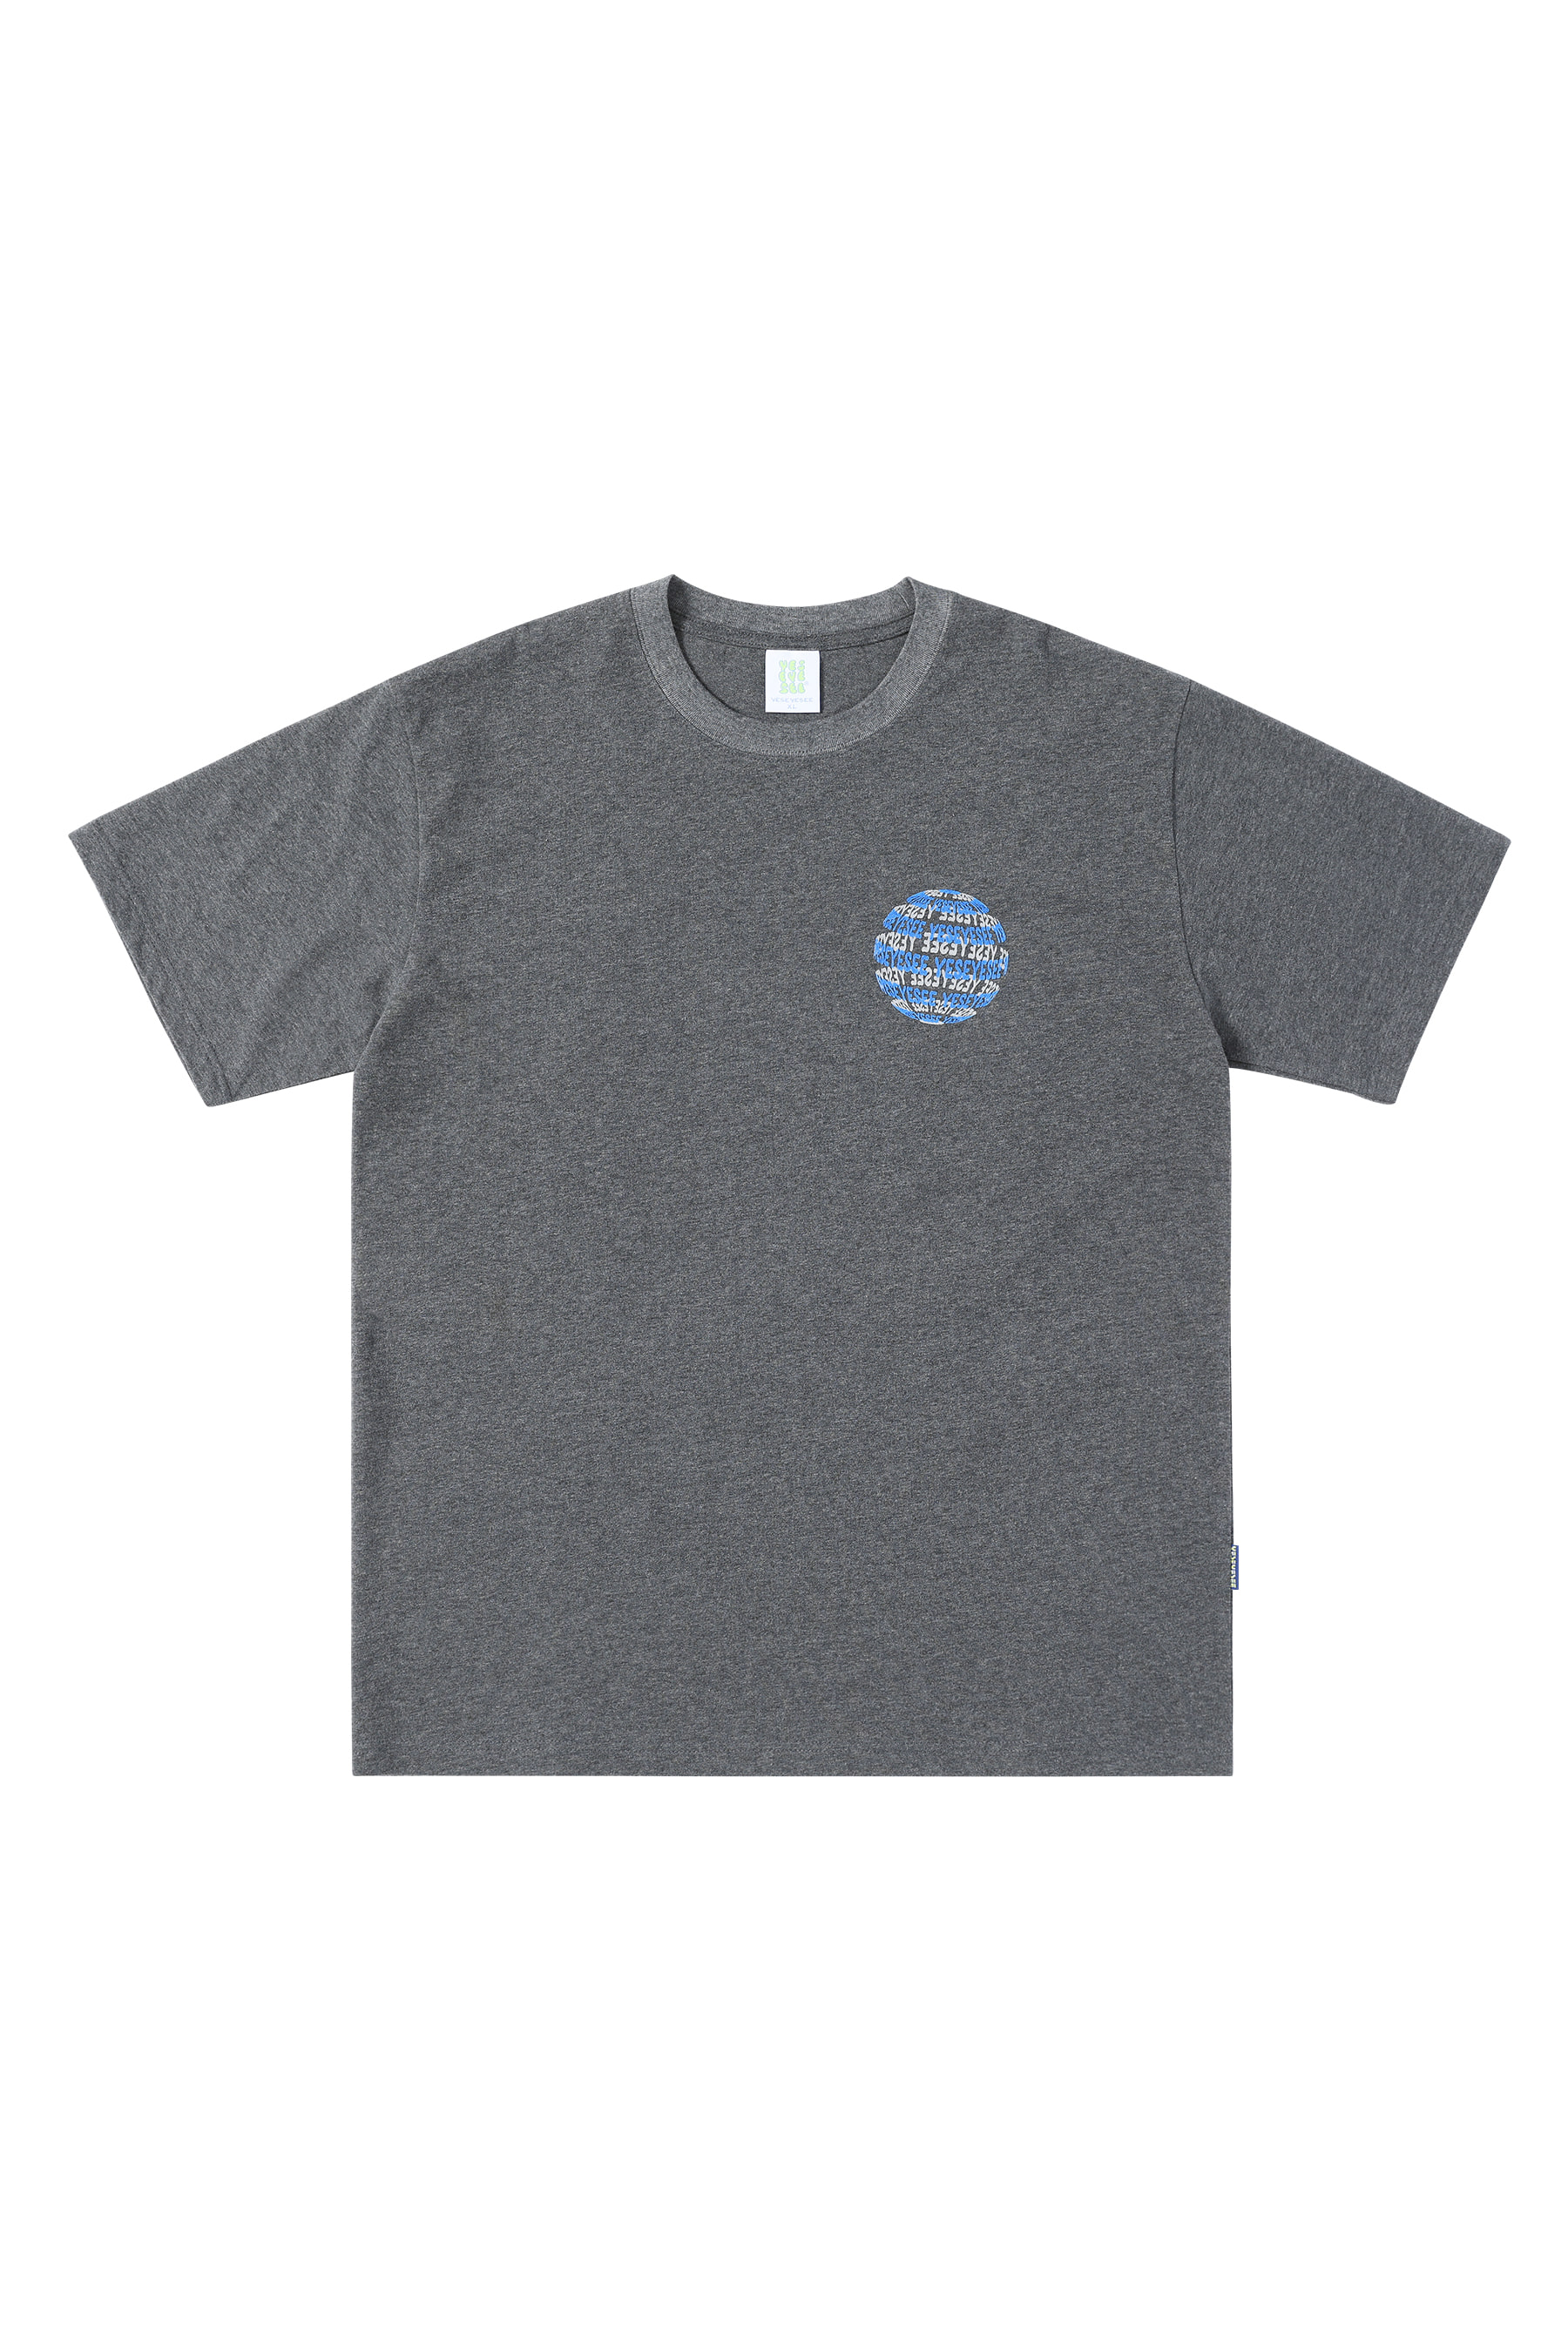 Y.E.S Space Tee Charcoal